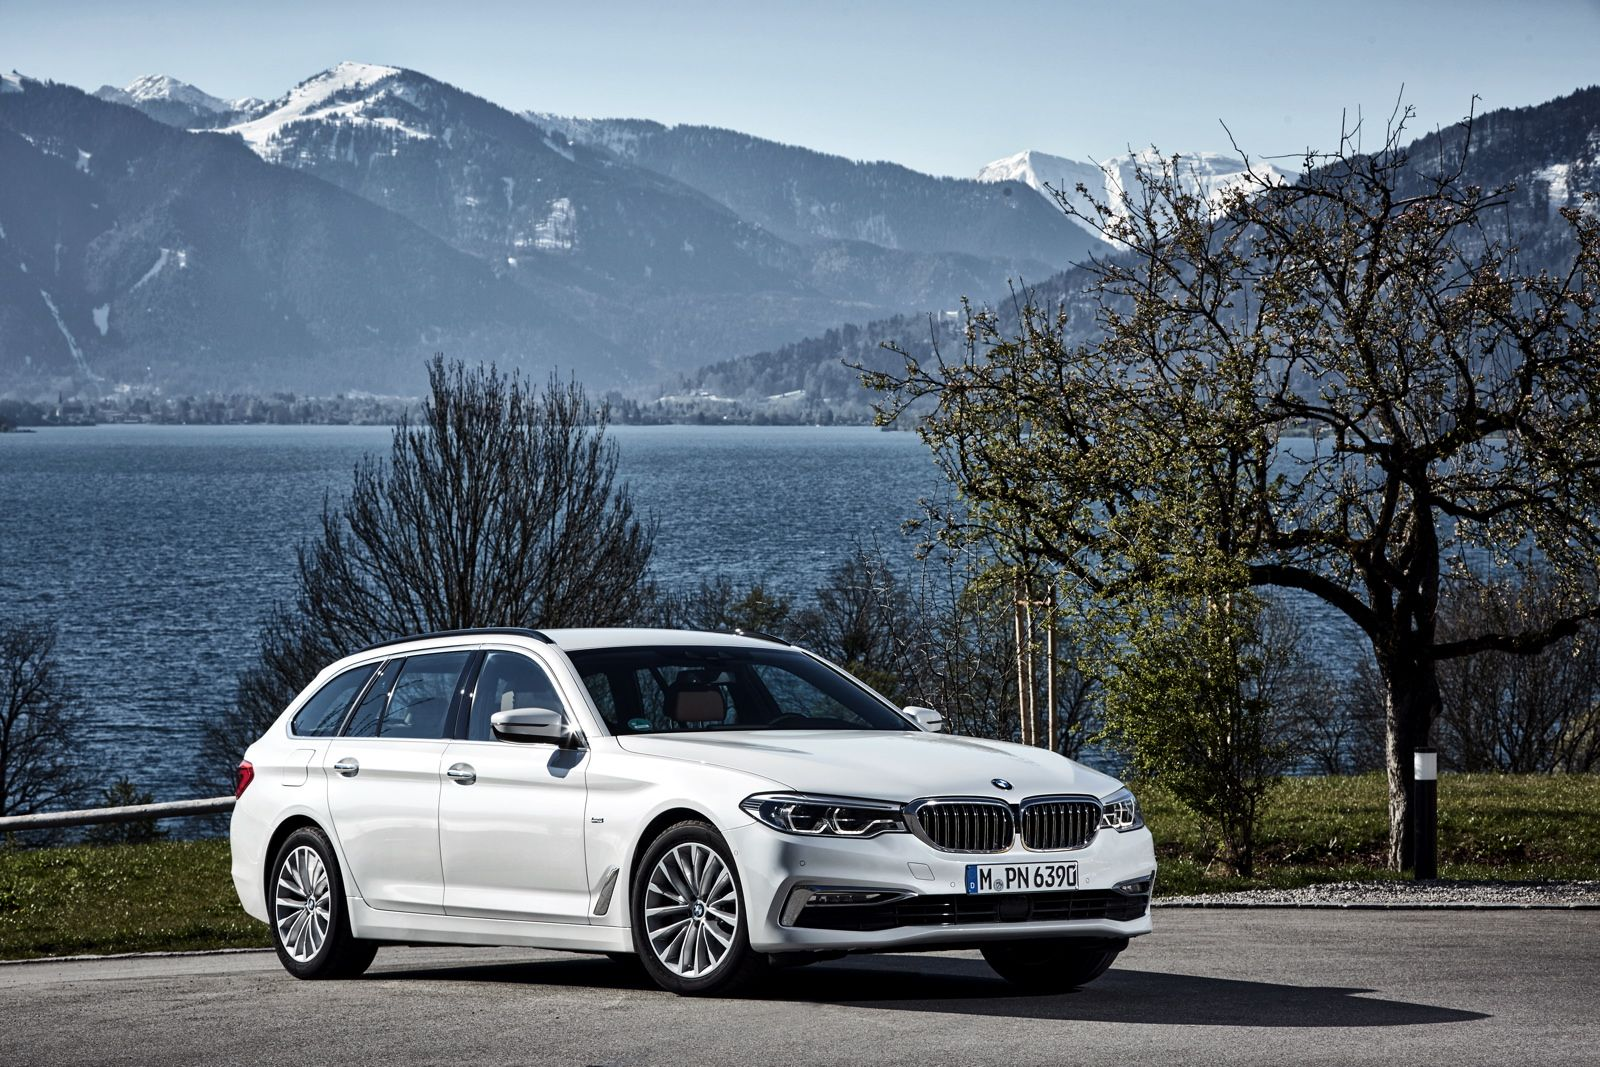 The 2017 Bmw 520d Touring Goes For A Photoshoot In Europe Bmw